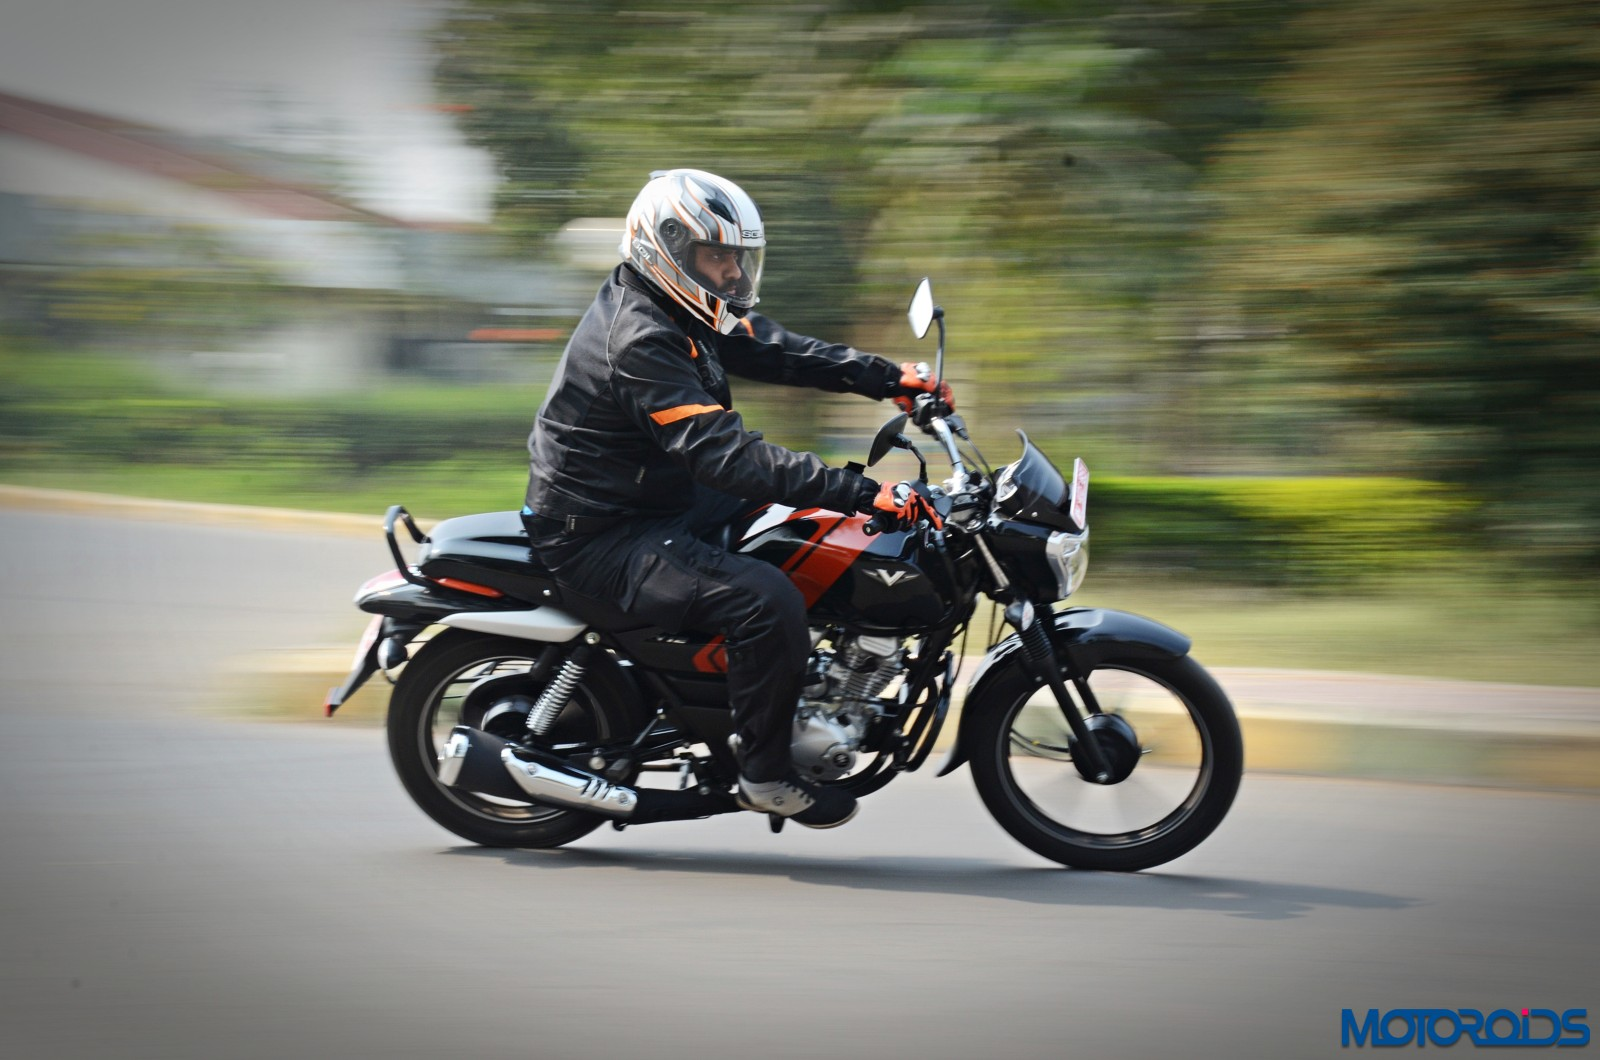 Bajaj-V12-Review-Action-Shots-14